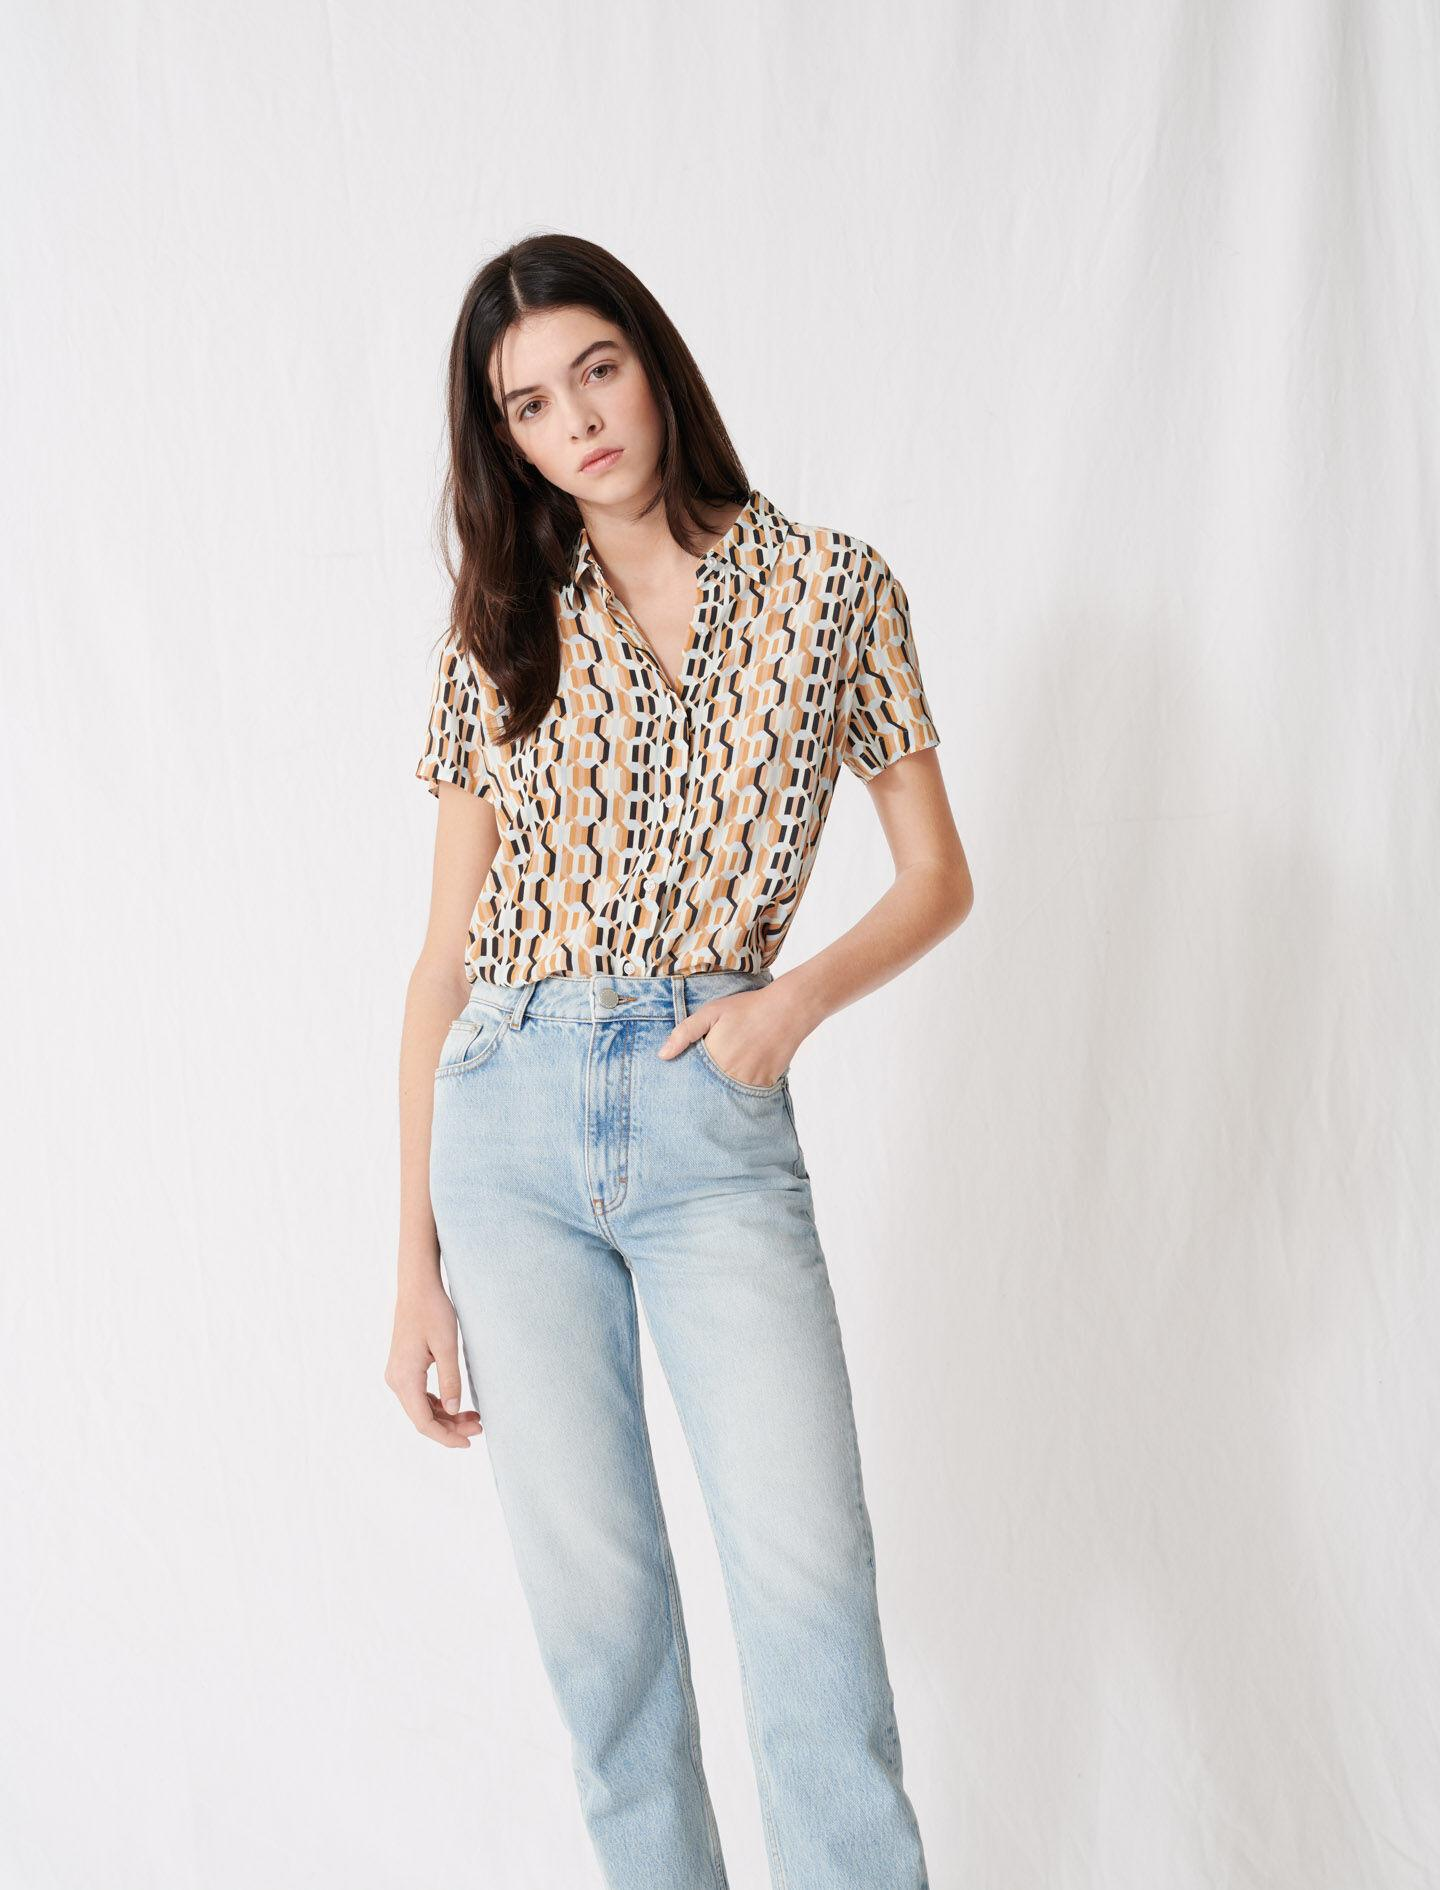 MOM-STYLE HIGH-WAISTED JEANS